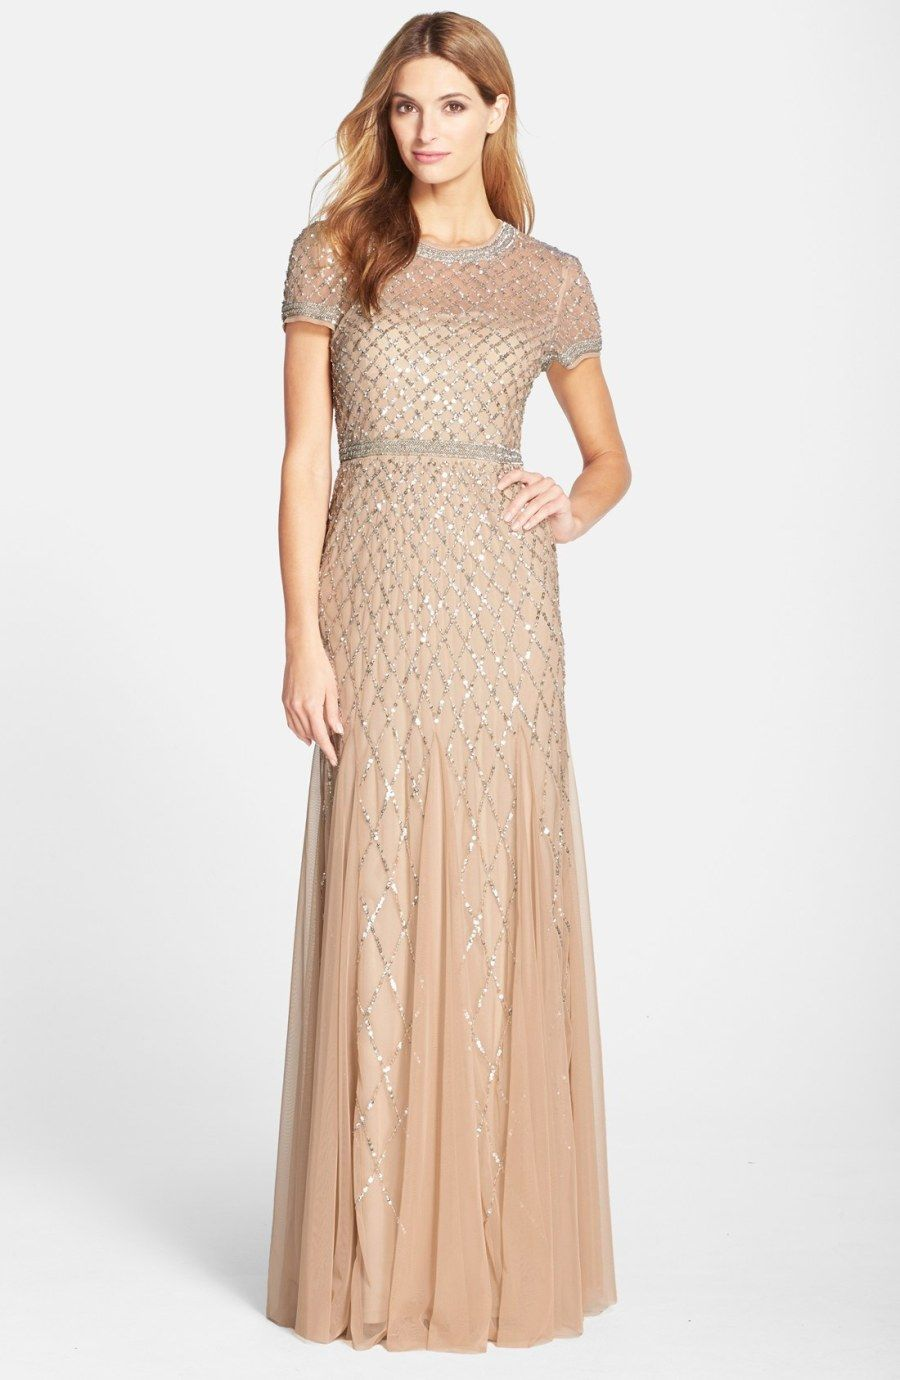 Rent wedding dress davids bridal   Gowns Weud Totally Wear to a Bachelor Rose Ceremony  Gown